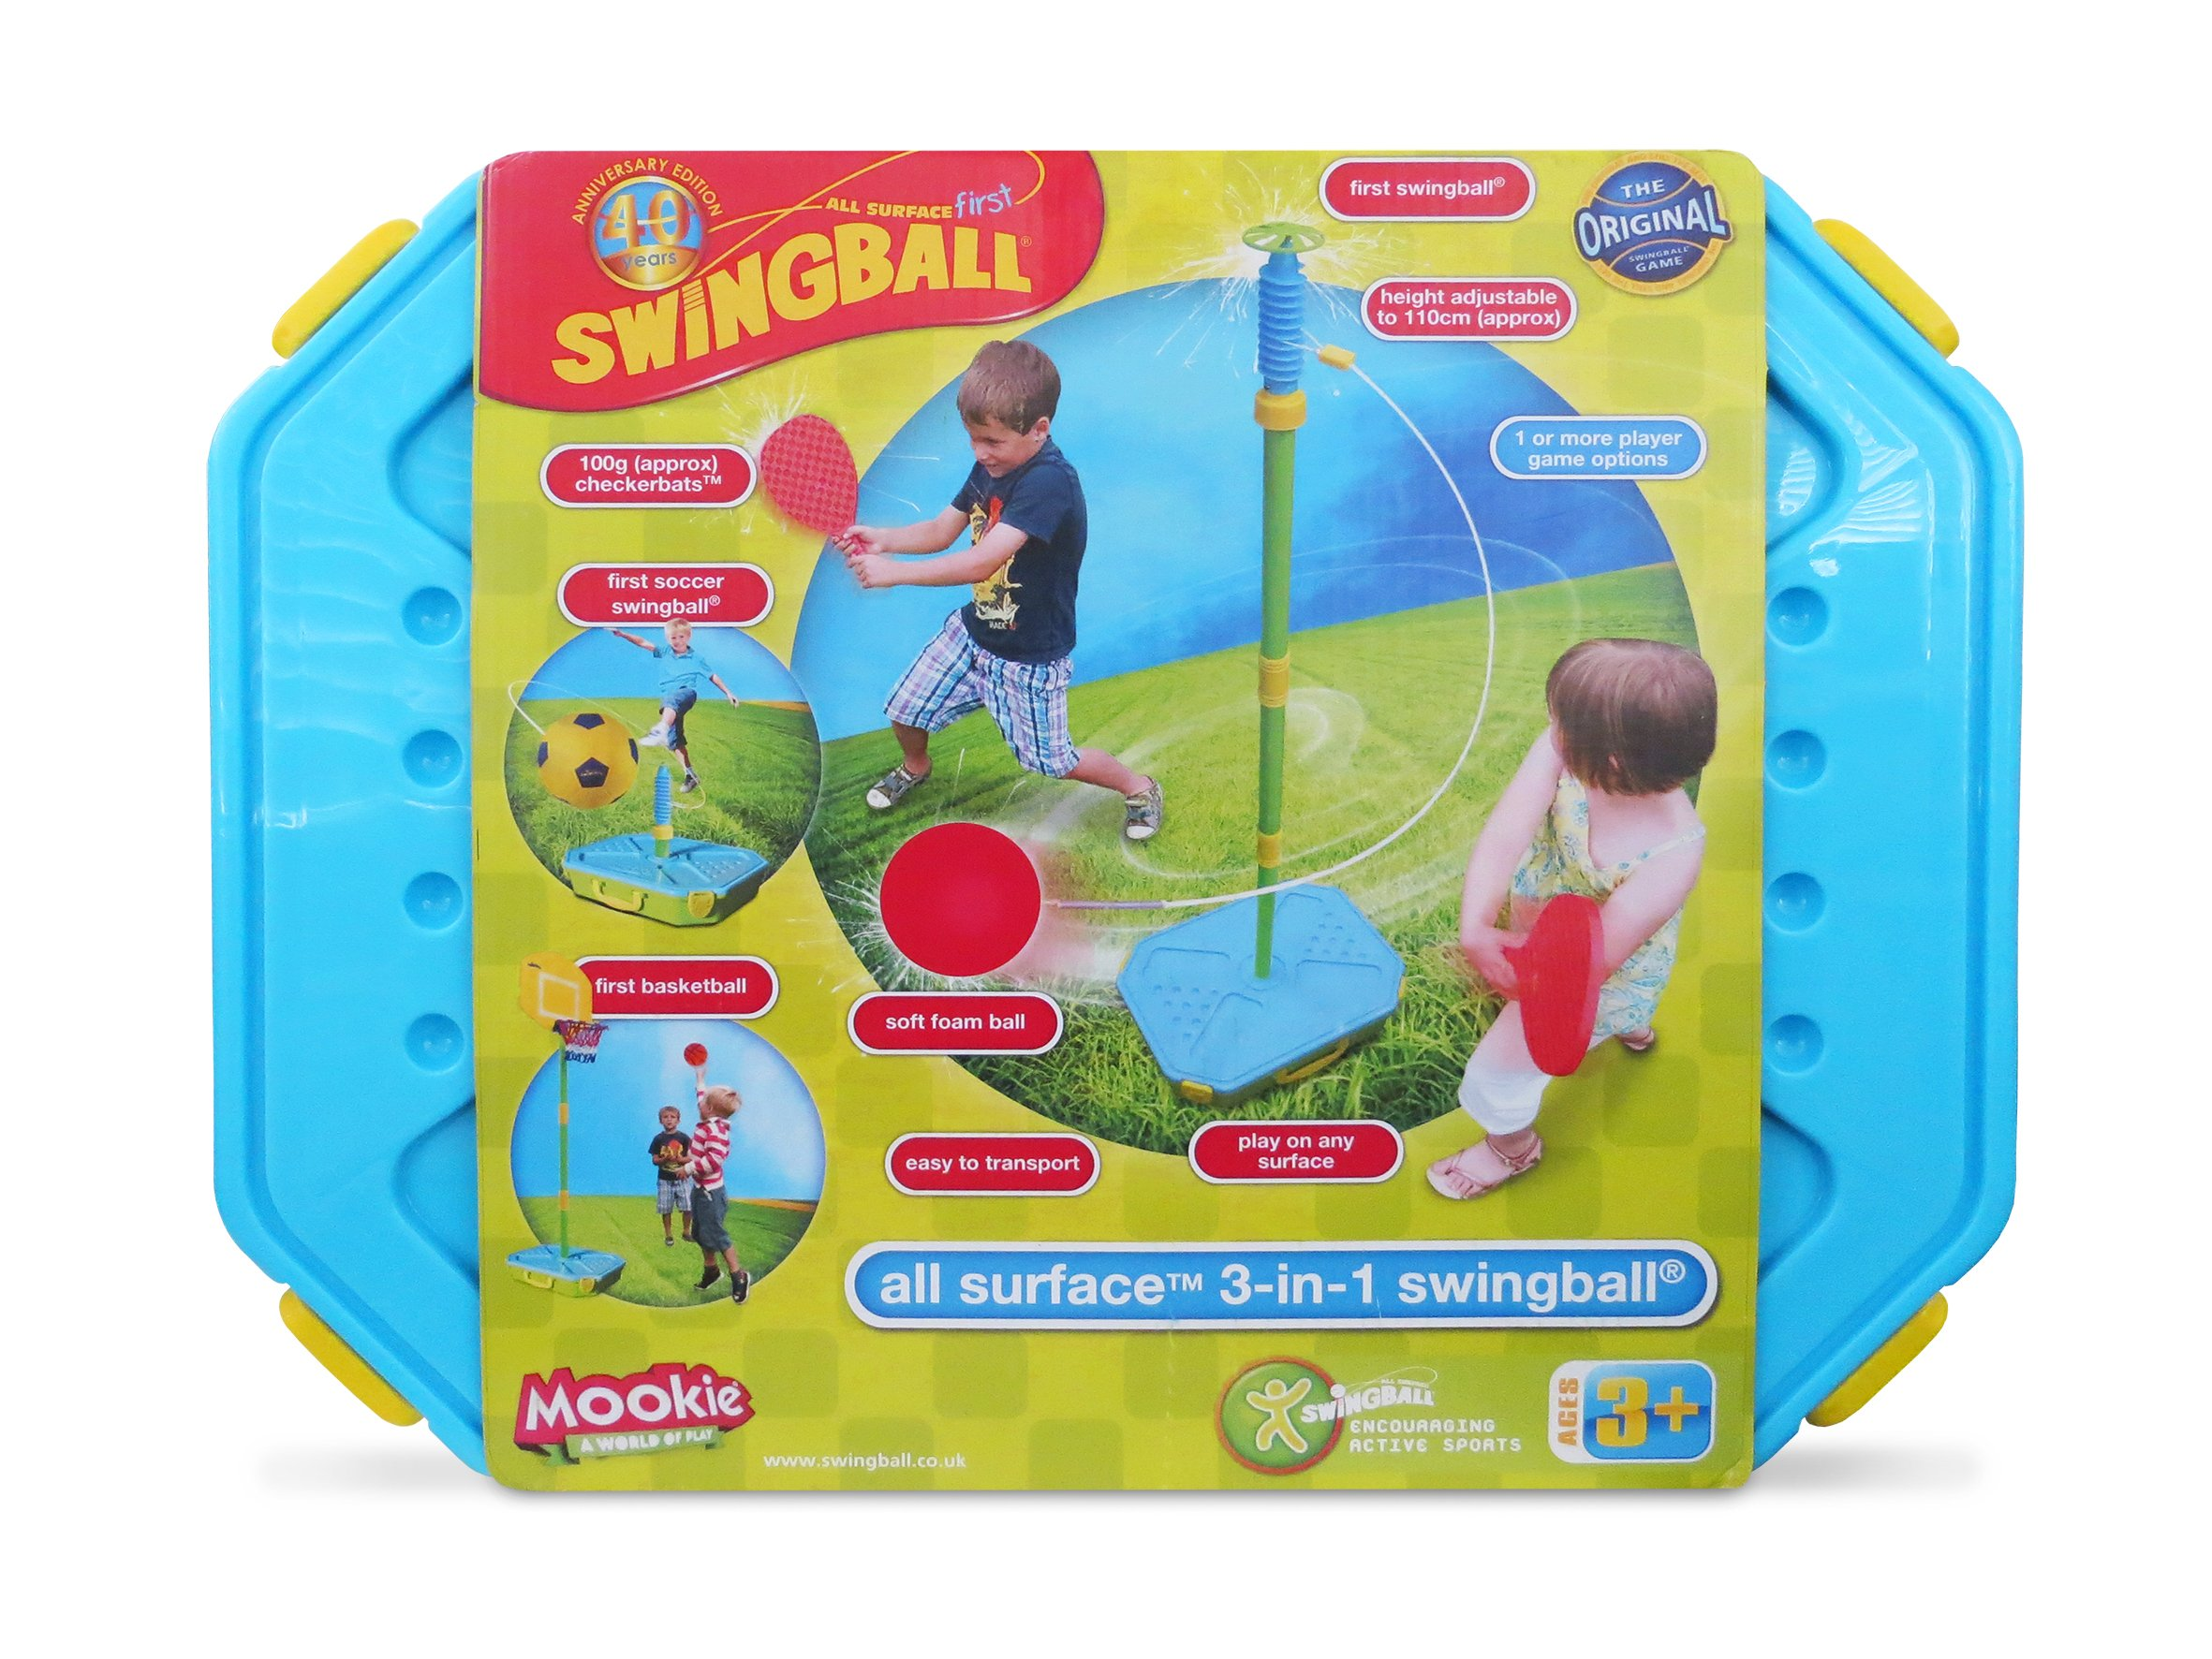 Mookie Swingball 3 in 1 Portable Game Set - Tetherball, Basketball, Soccer by Mookie